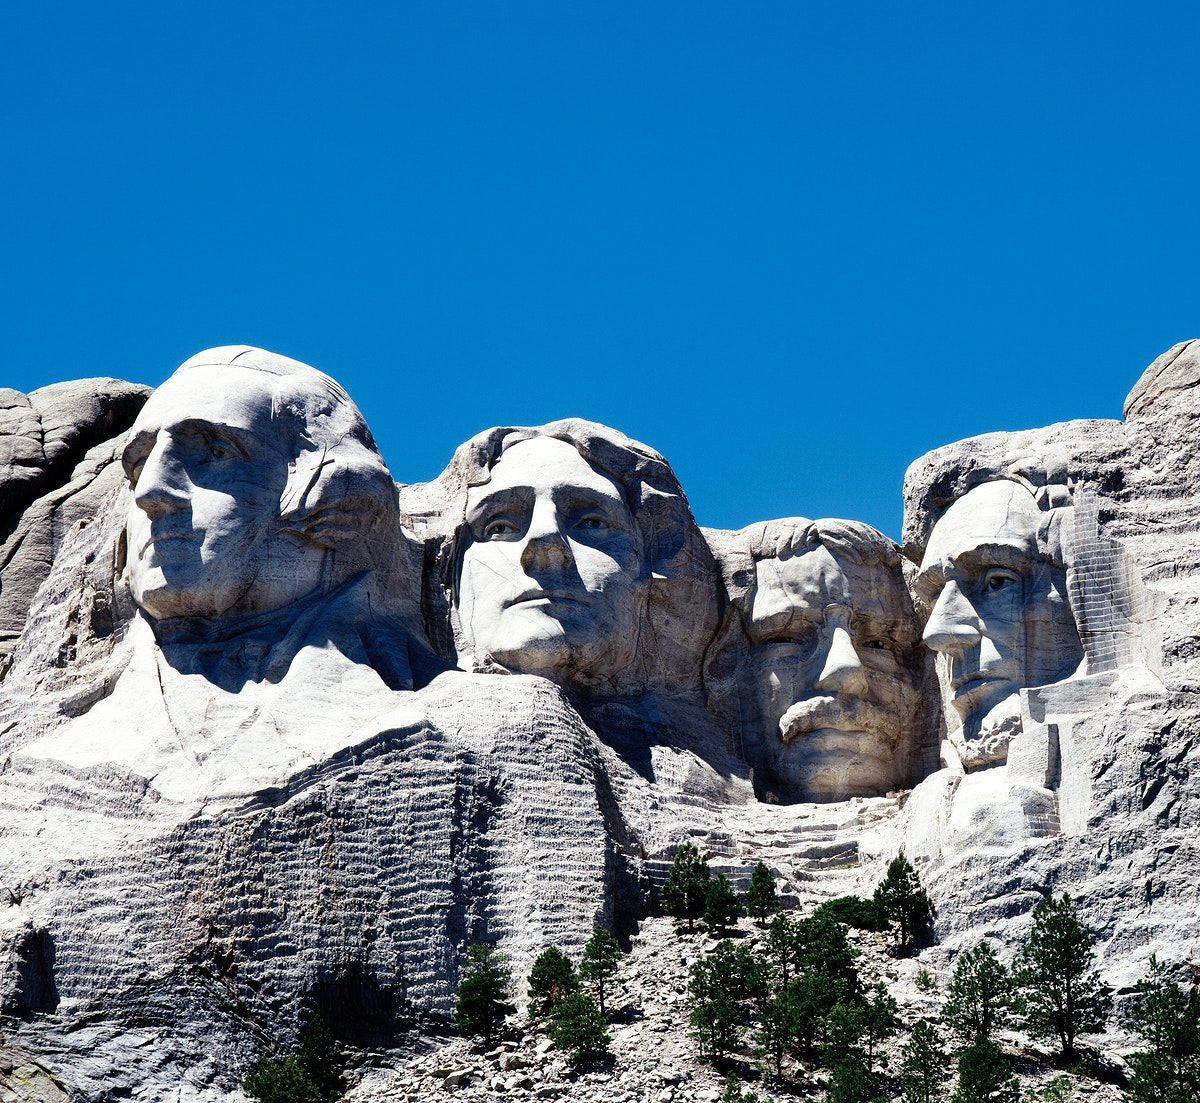 Mount Rushmore. Original image from Carol M. Highsmith's America, Library of Congress collection. Digitally enhanced by…